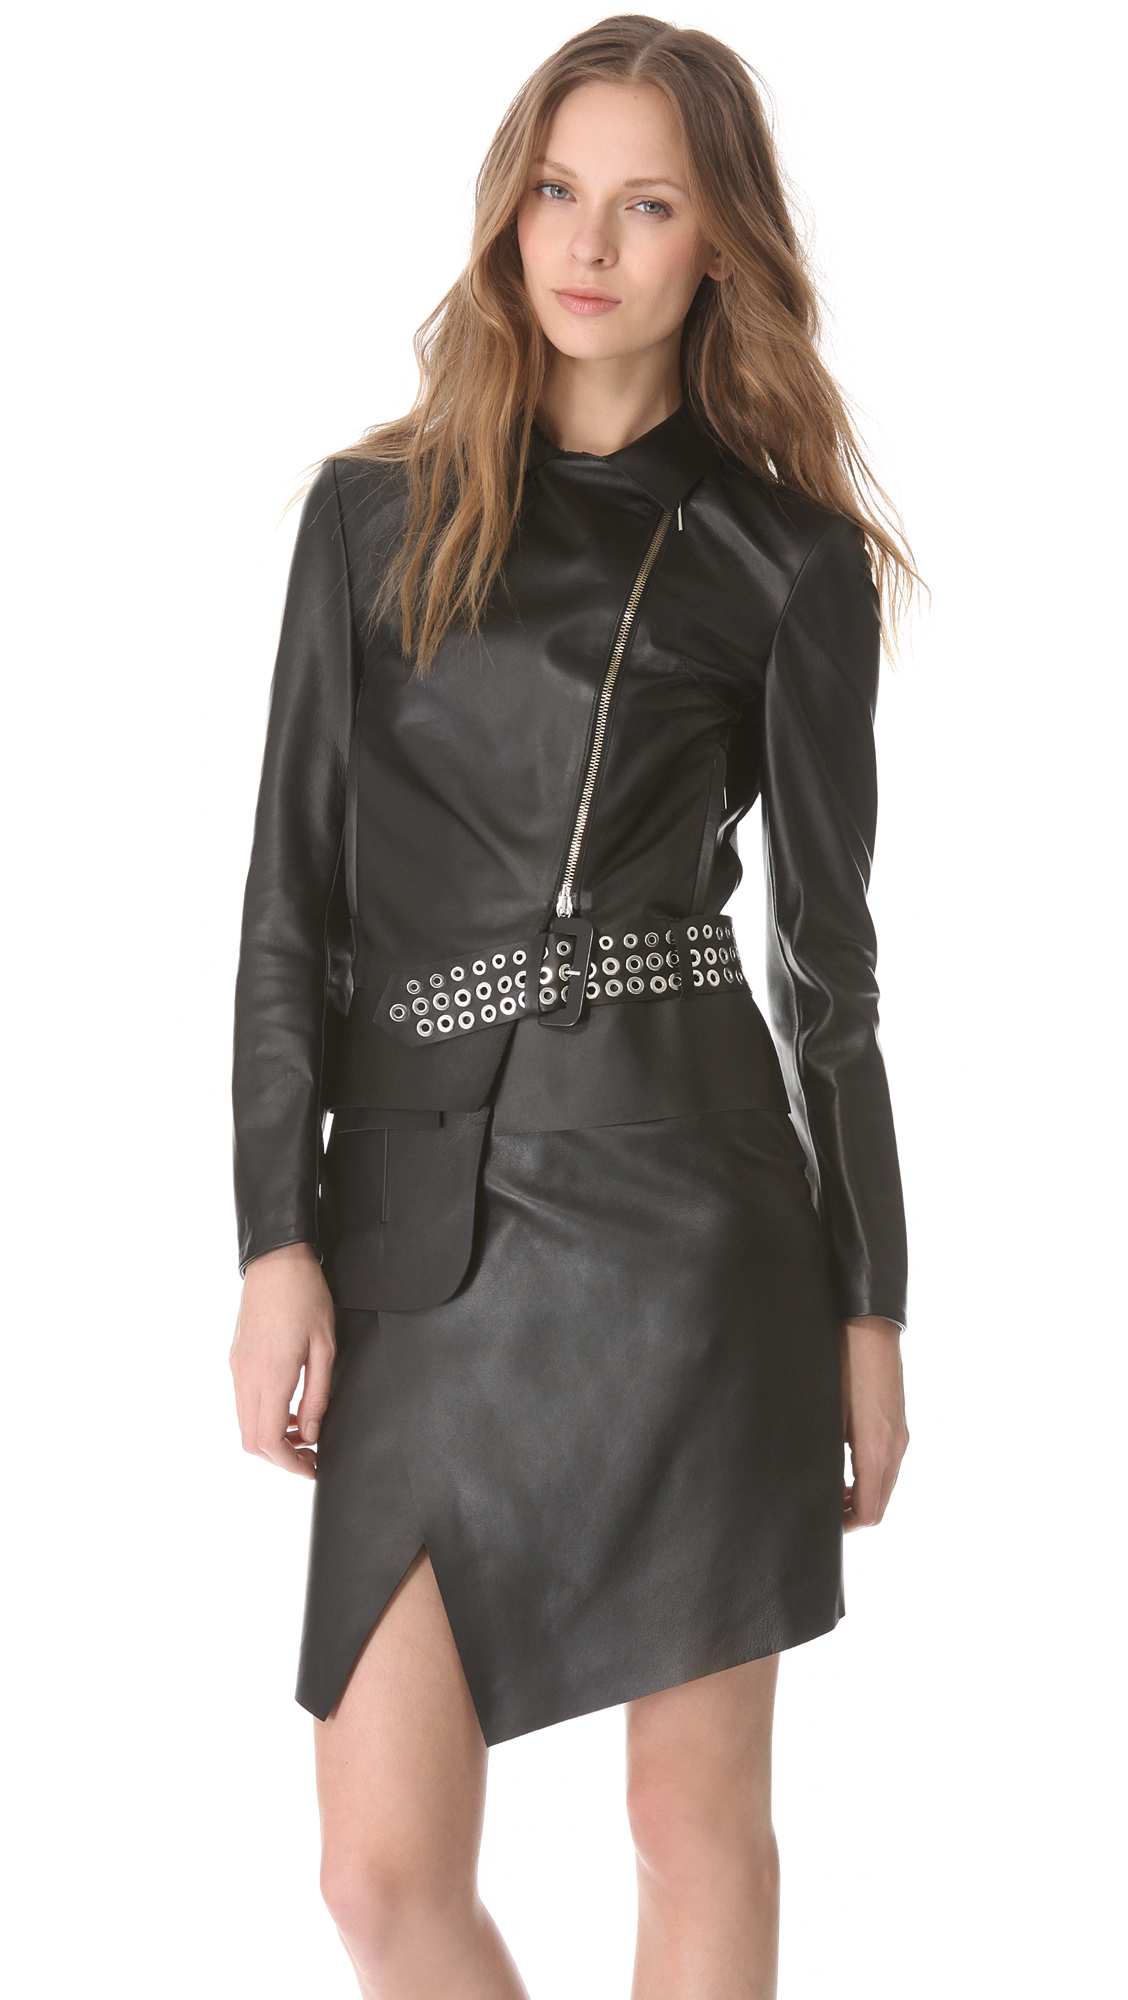 costume national leather jacket with belt detail in black